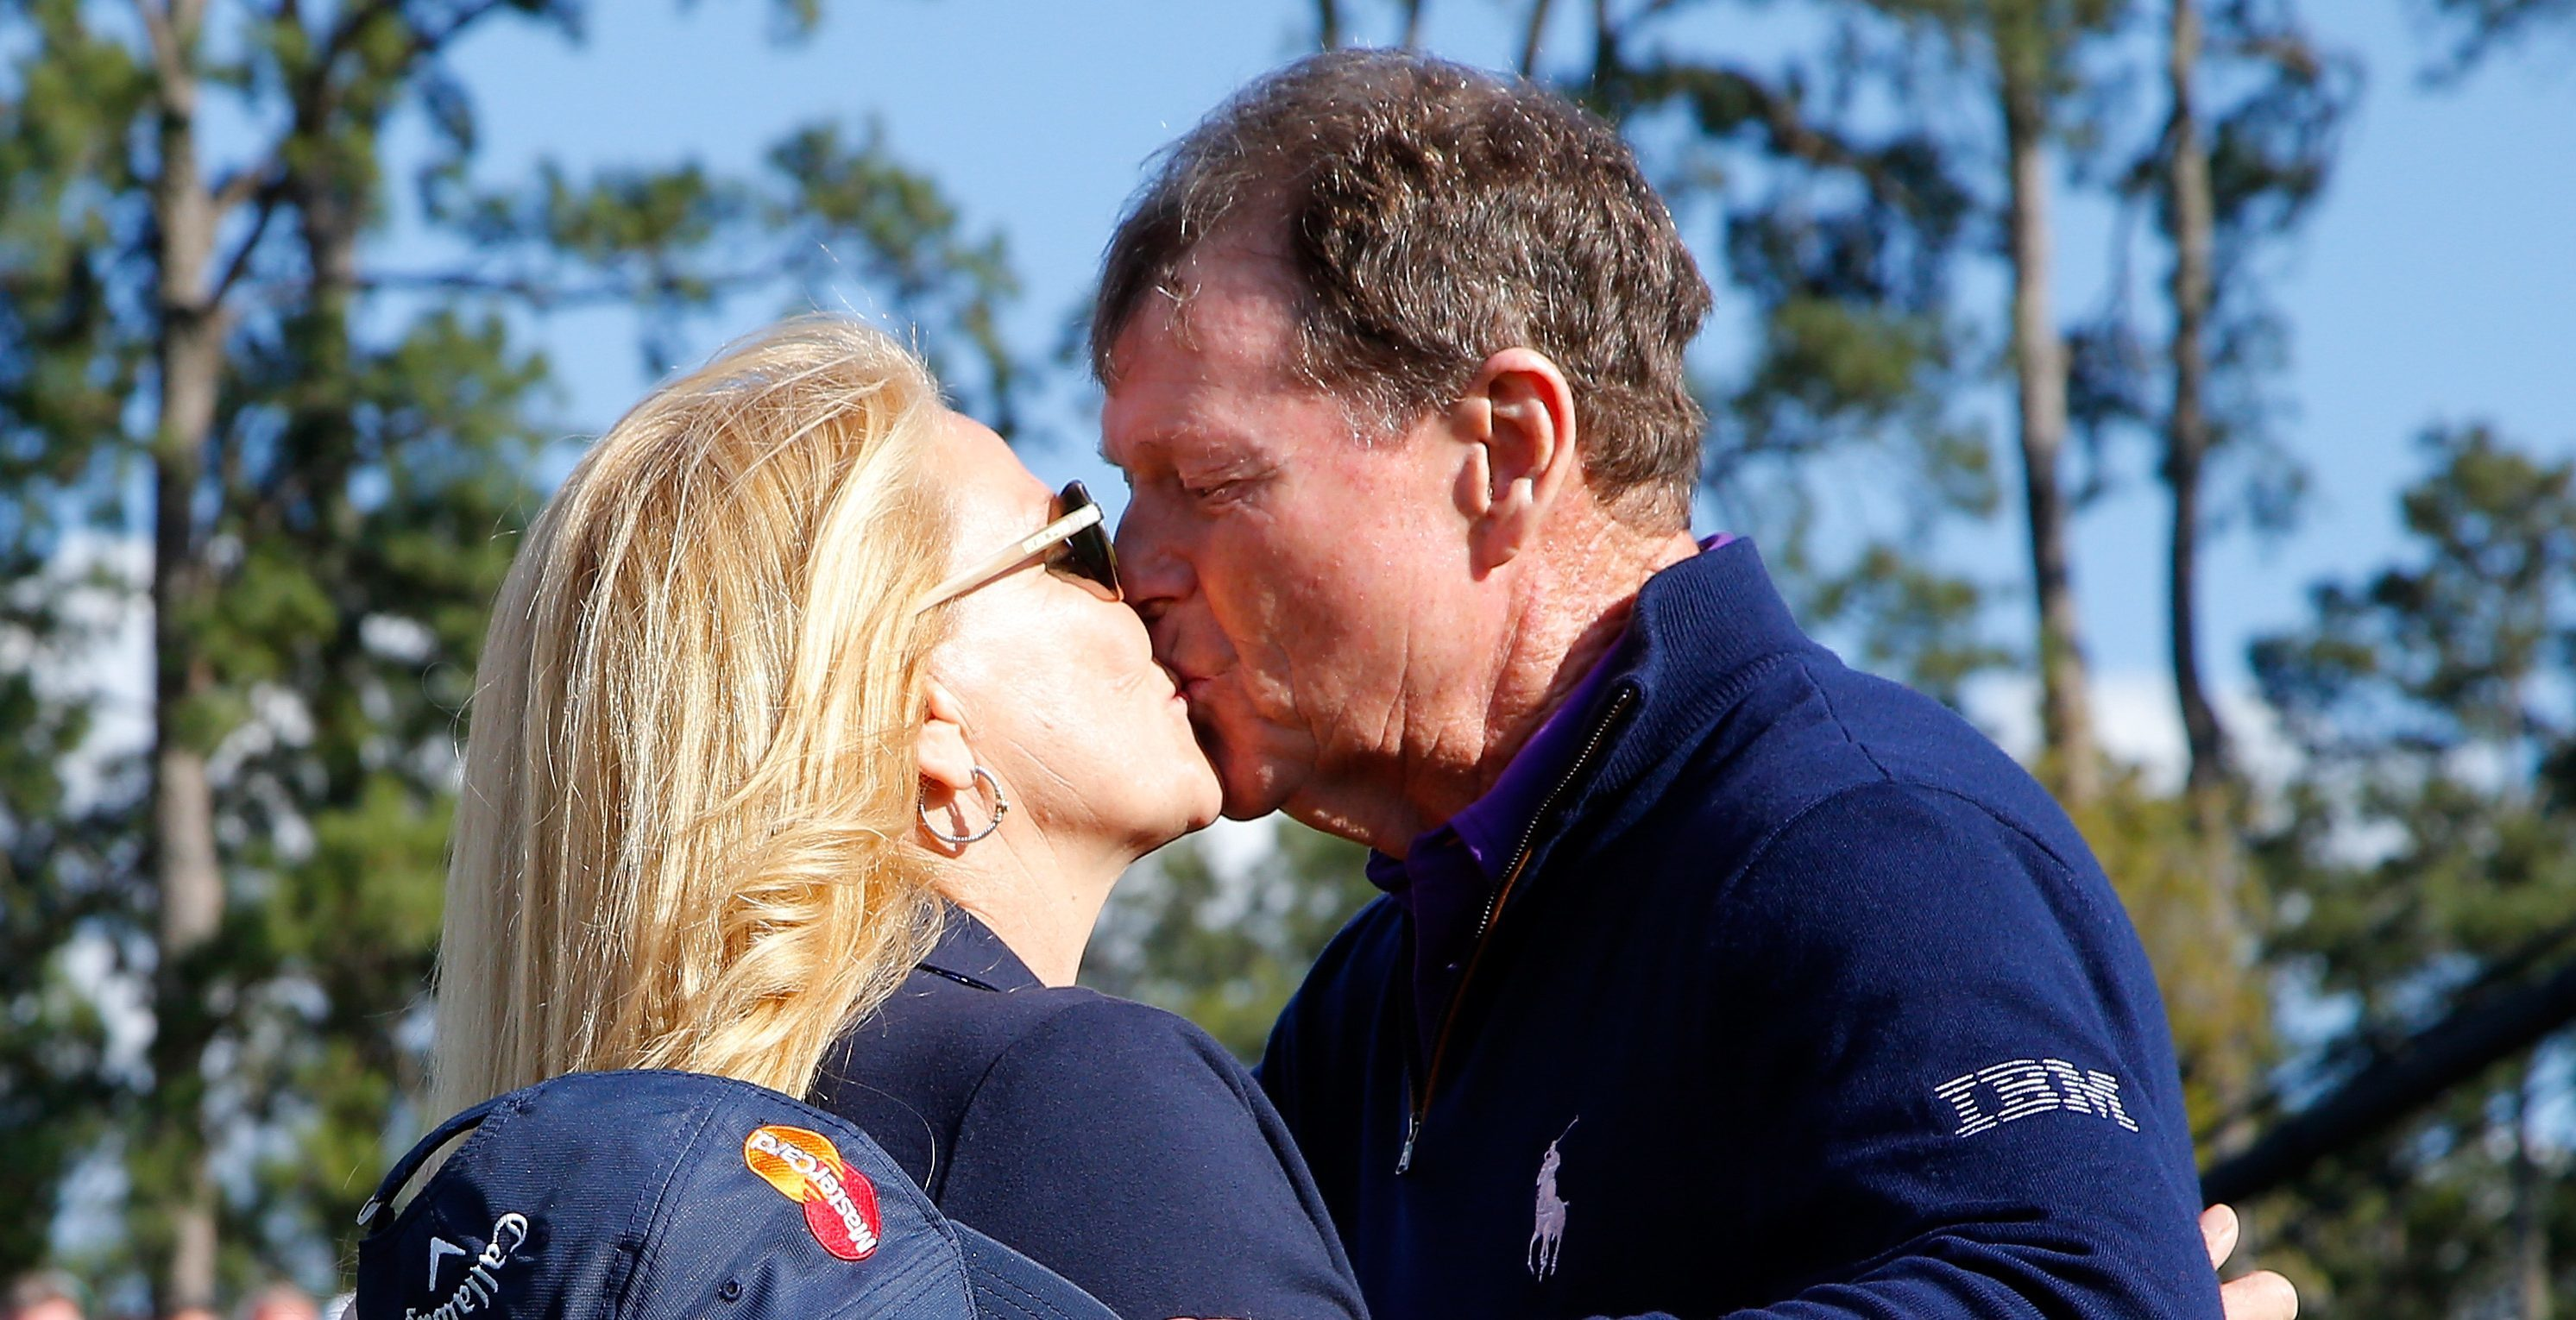 Tom Watson of the United States hugs his wife Hilary after completing the second round of the 2016 Masters Tournament at Augusta National Golf Club.